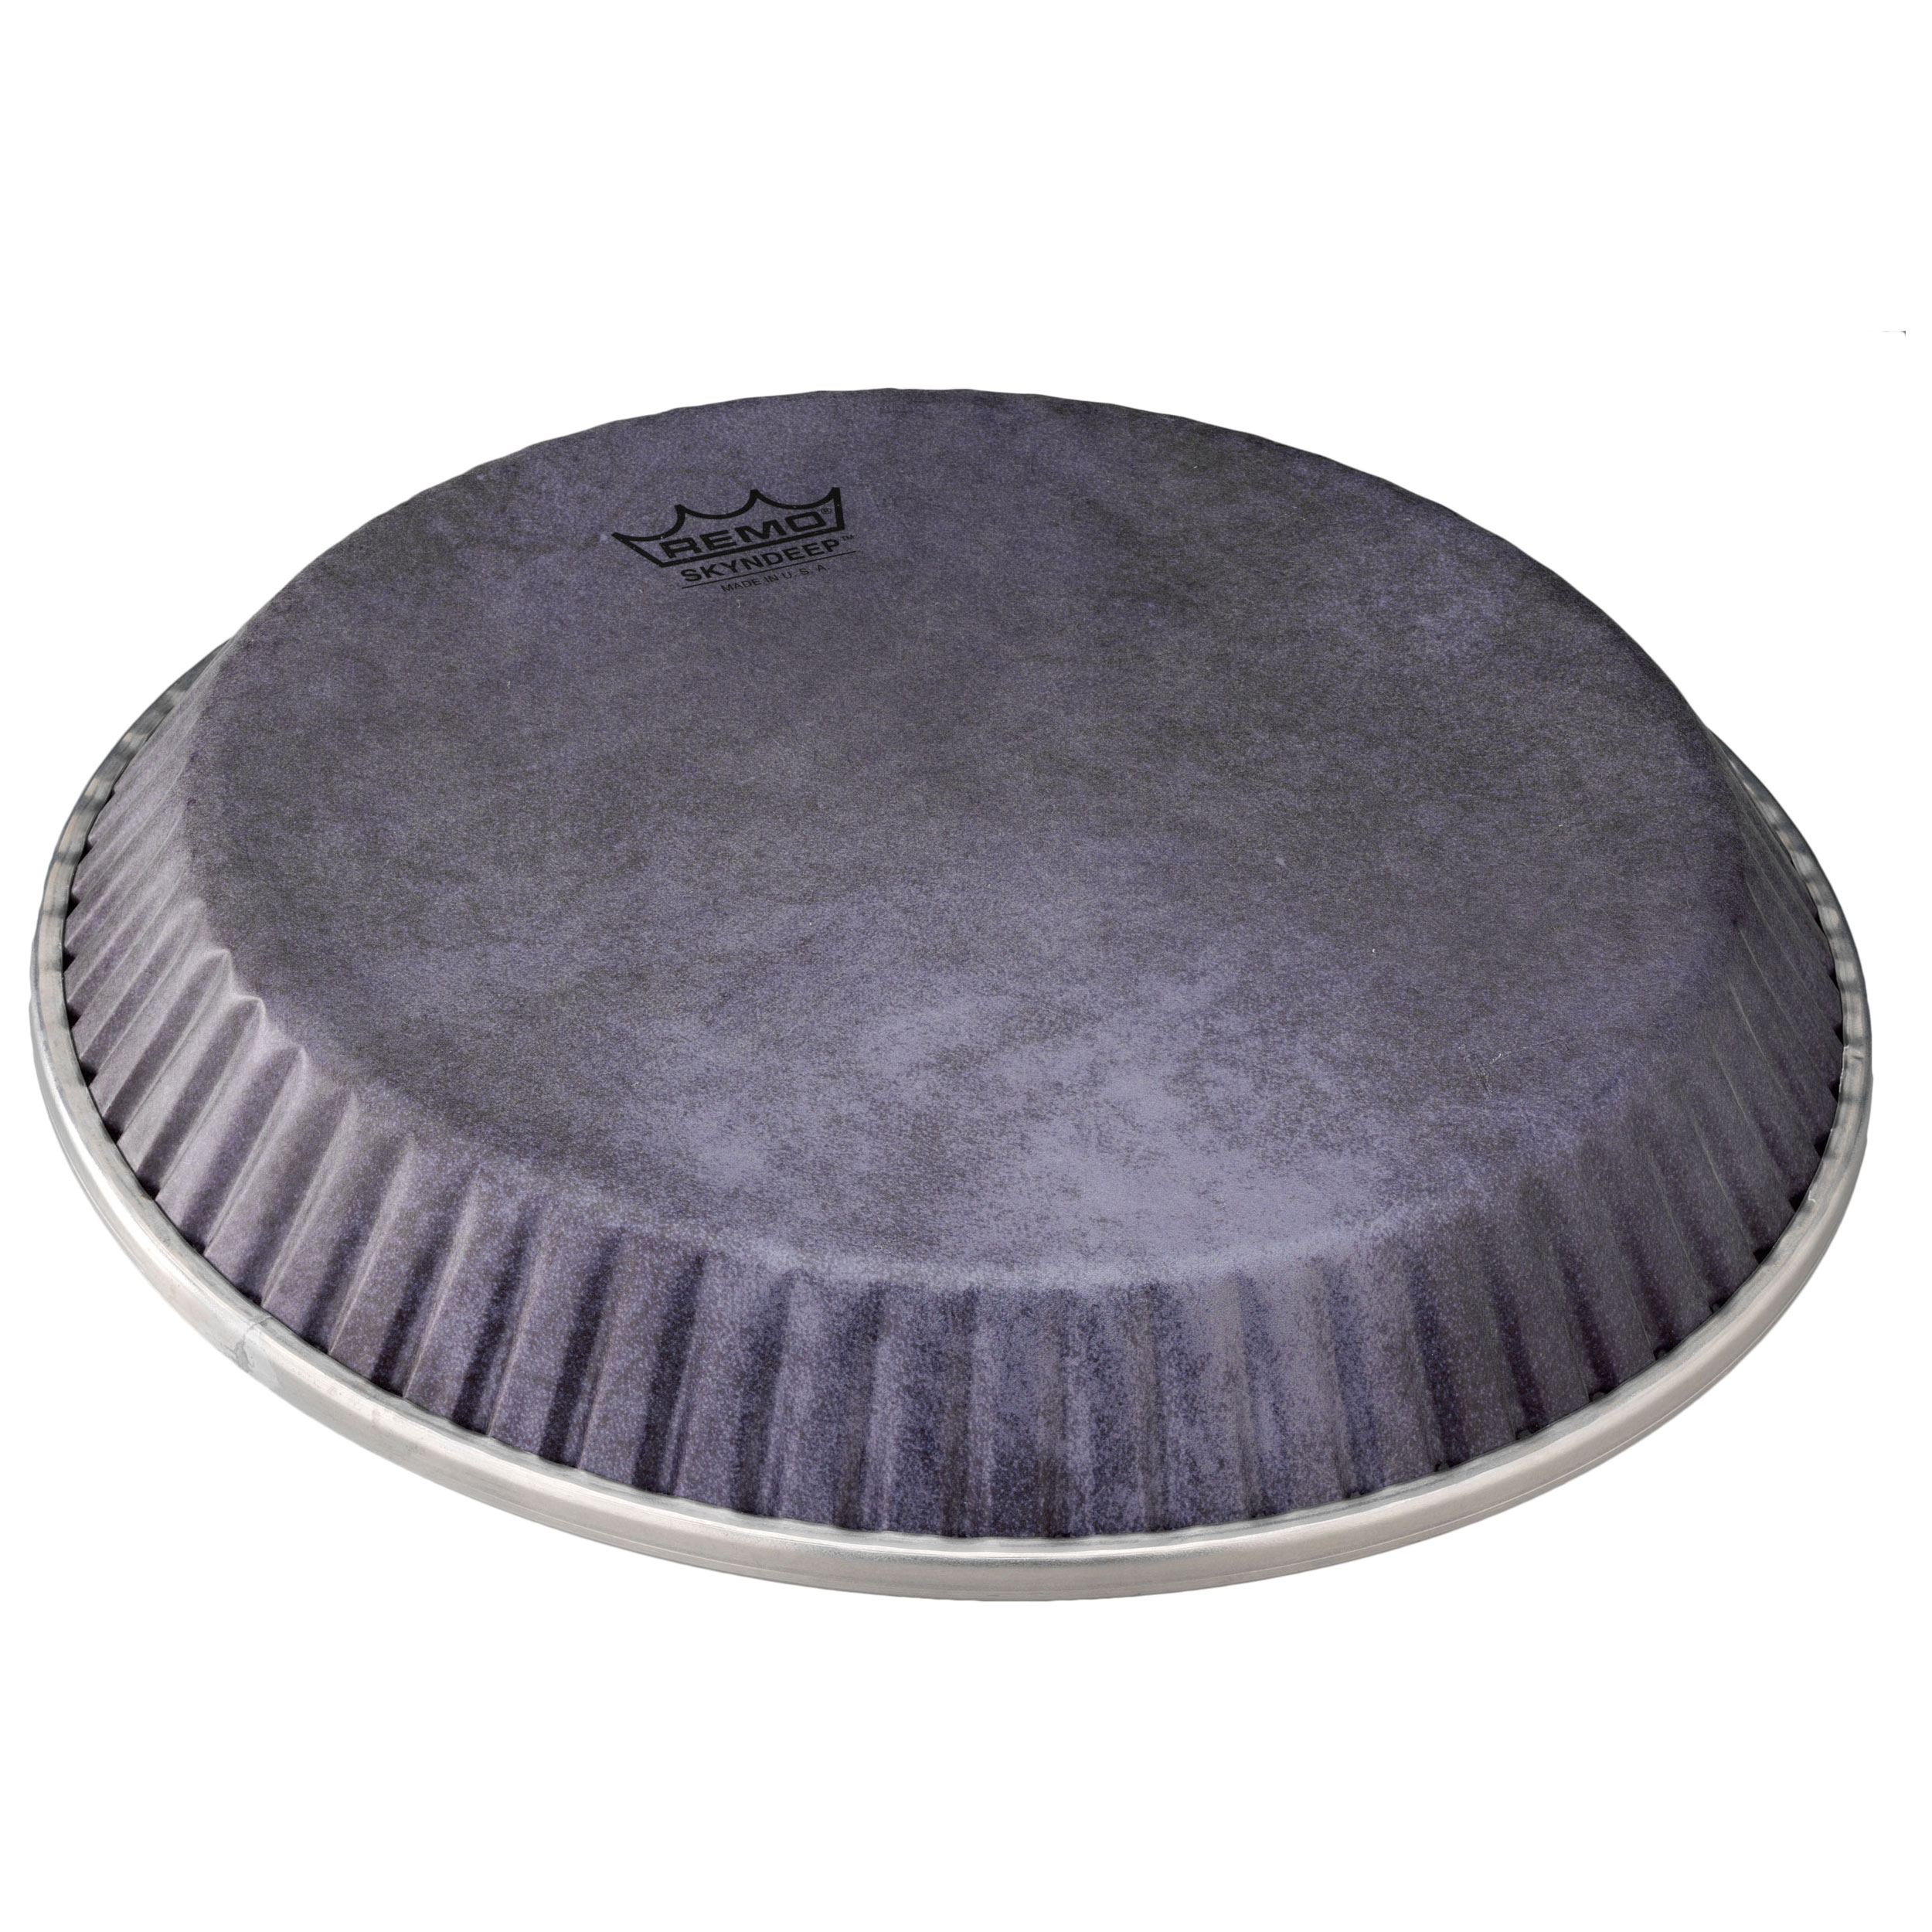 """Remo 9.75"""" Symmetry Skyndeep Conga Drum Head (D2 Collar) with Black Calfskin Graphic"""